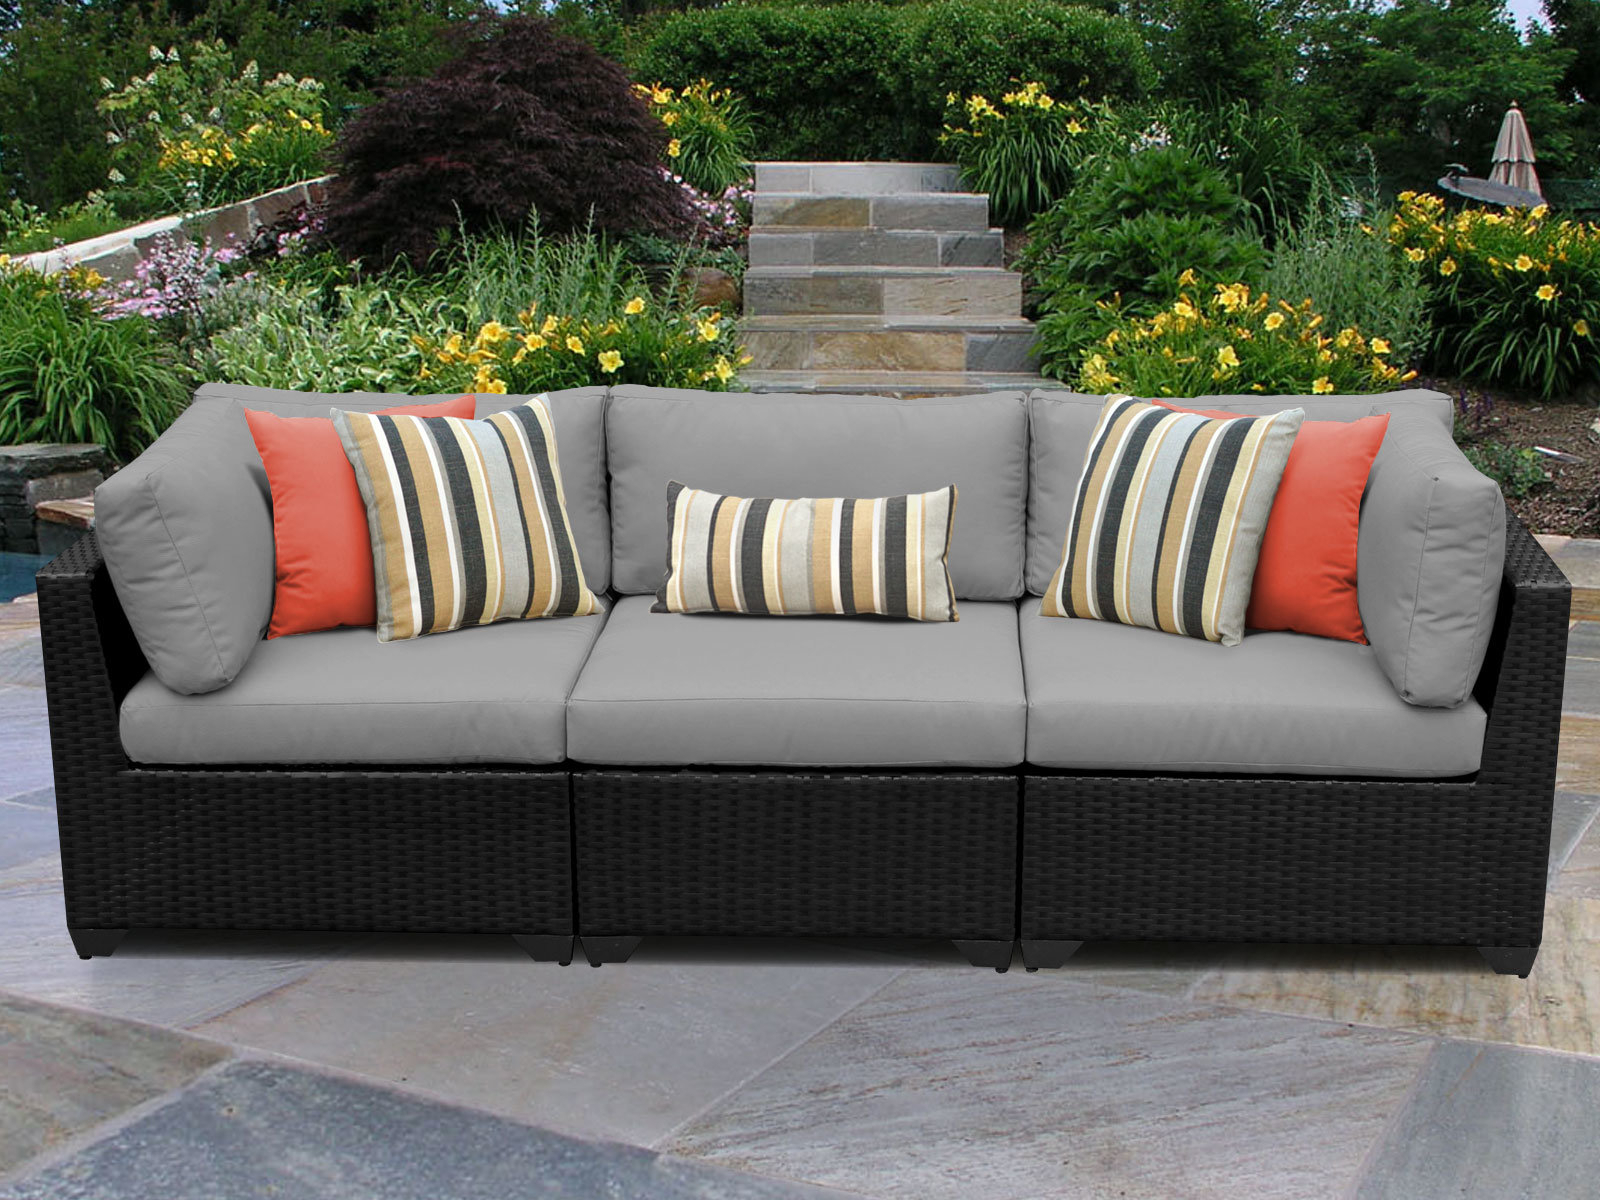 Meeks Patio Sofas With Cushions With Newest Camak Patio Sofa With Cushions (View 12 of 20)